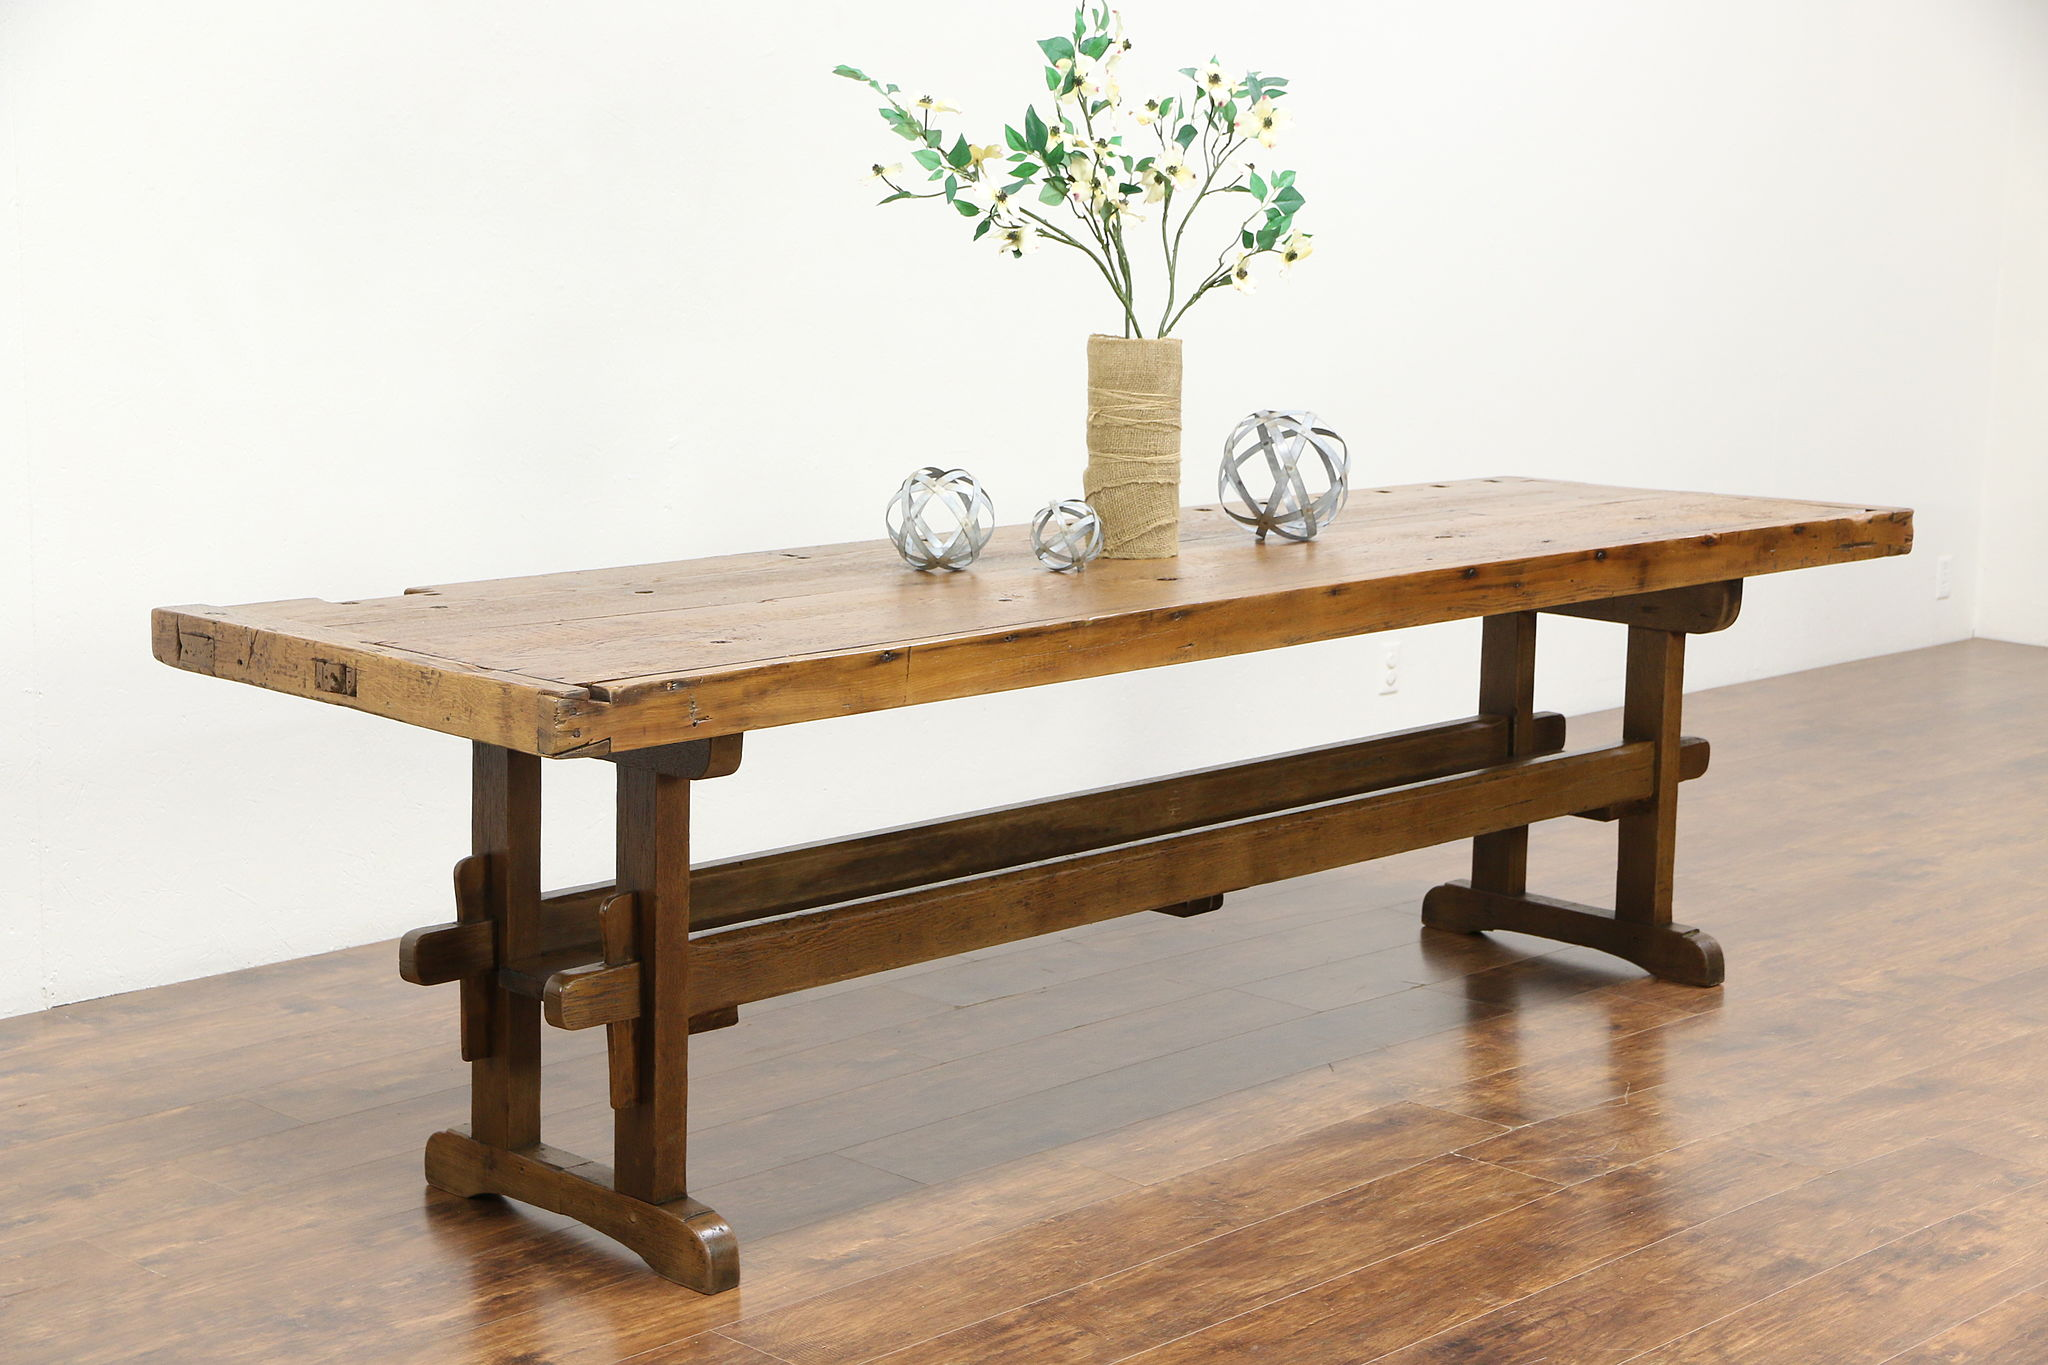 Carpenter Workbench Rustic Antique 1900 Dining or Kitchen Table, 9\' Long